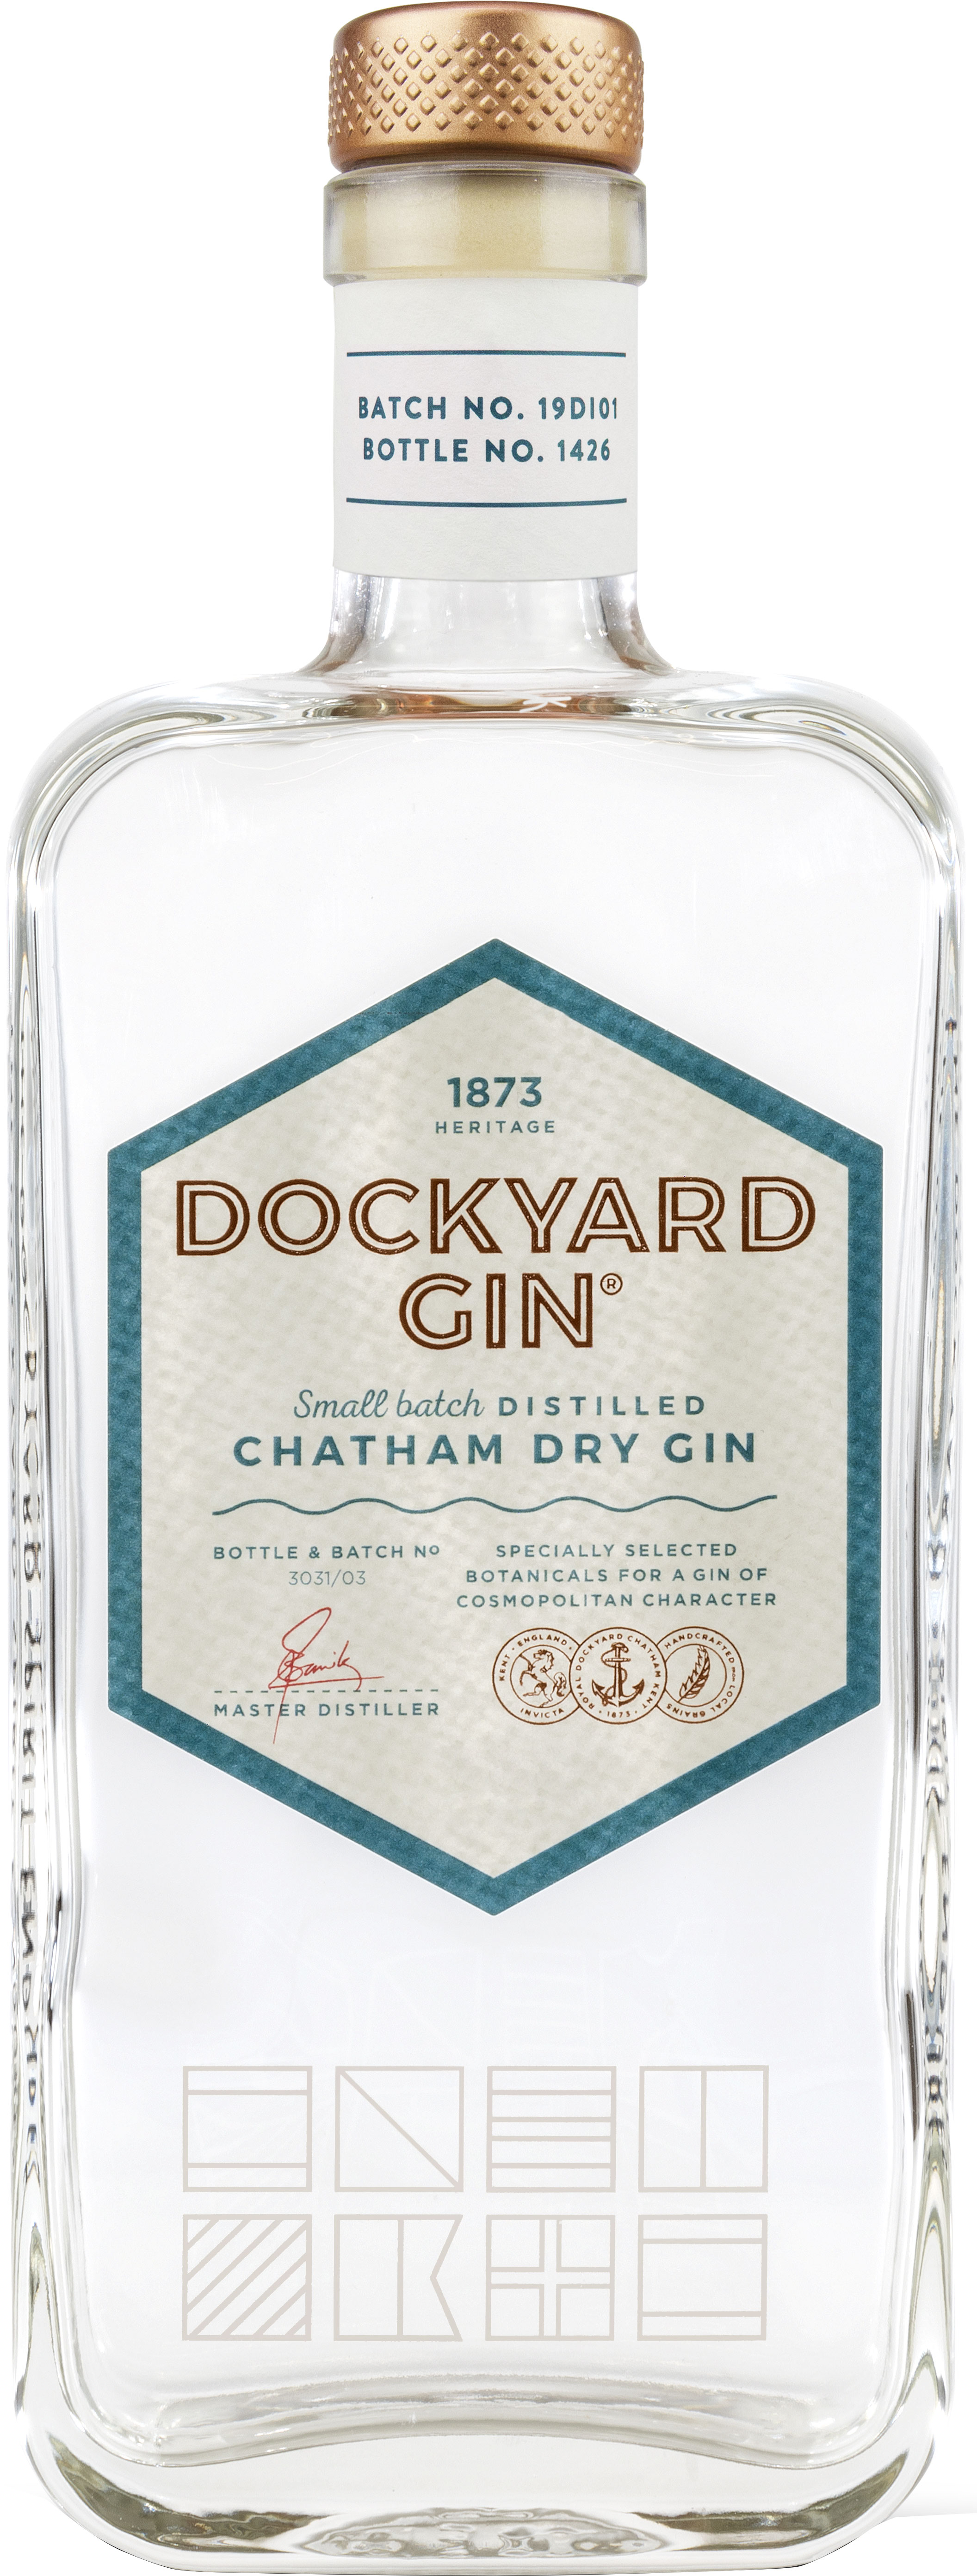 Dockyard - Chatham Dry Gin 50cl Bottle